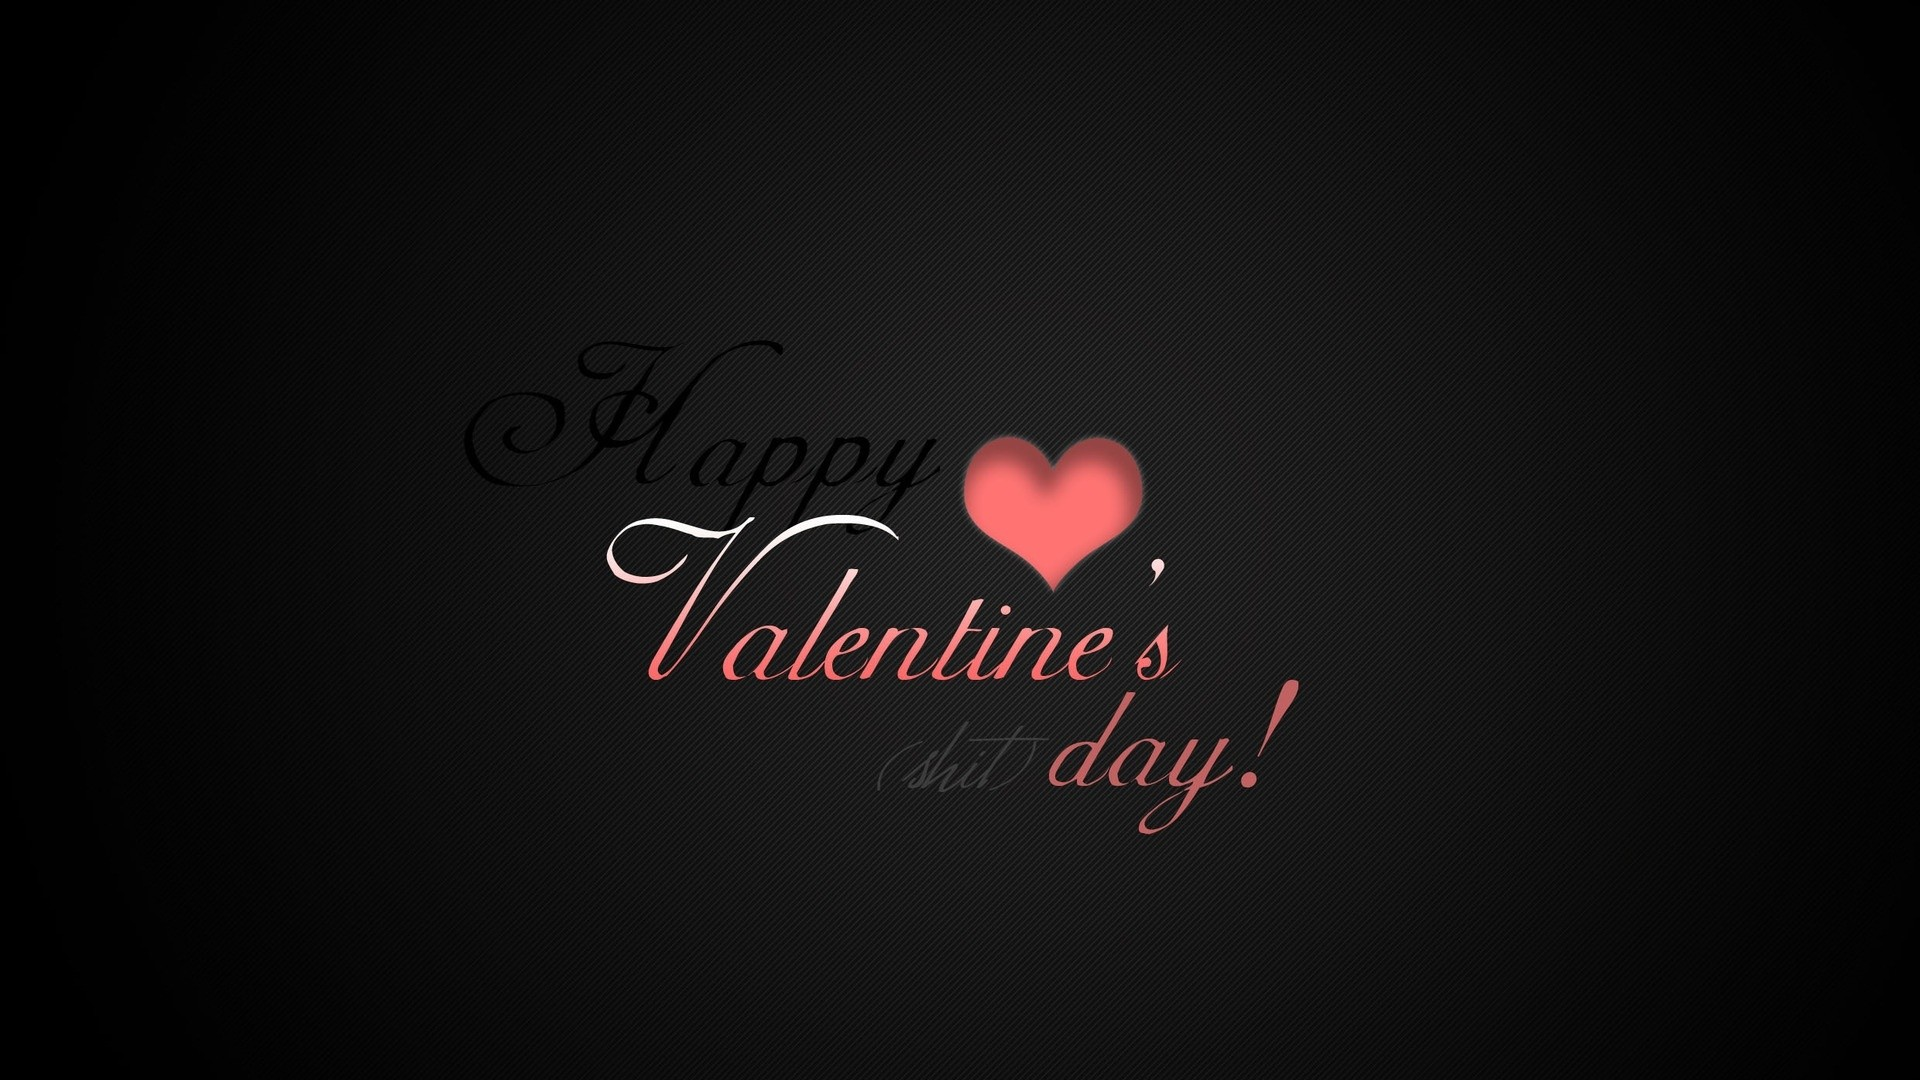 Valentines Day Funny Quotes HD Wallpaper Happy Valentines Day Funny 1920x1080